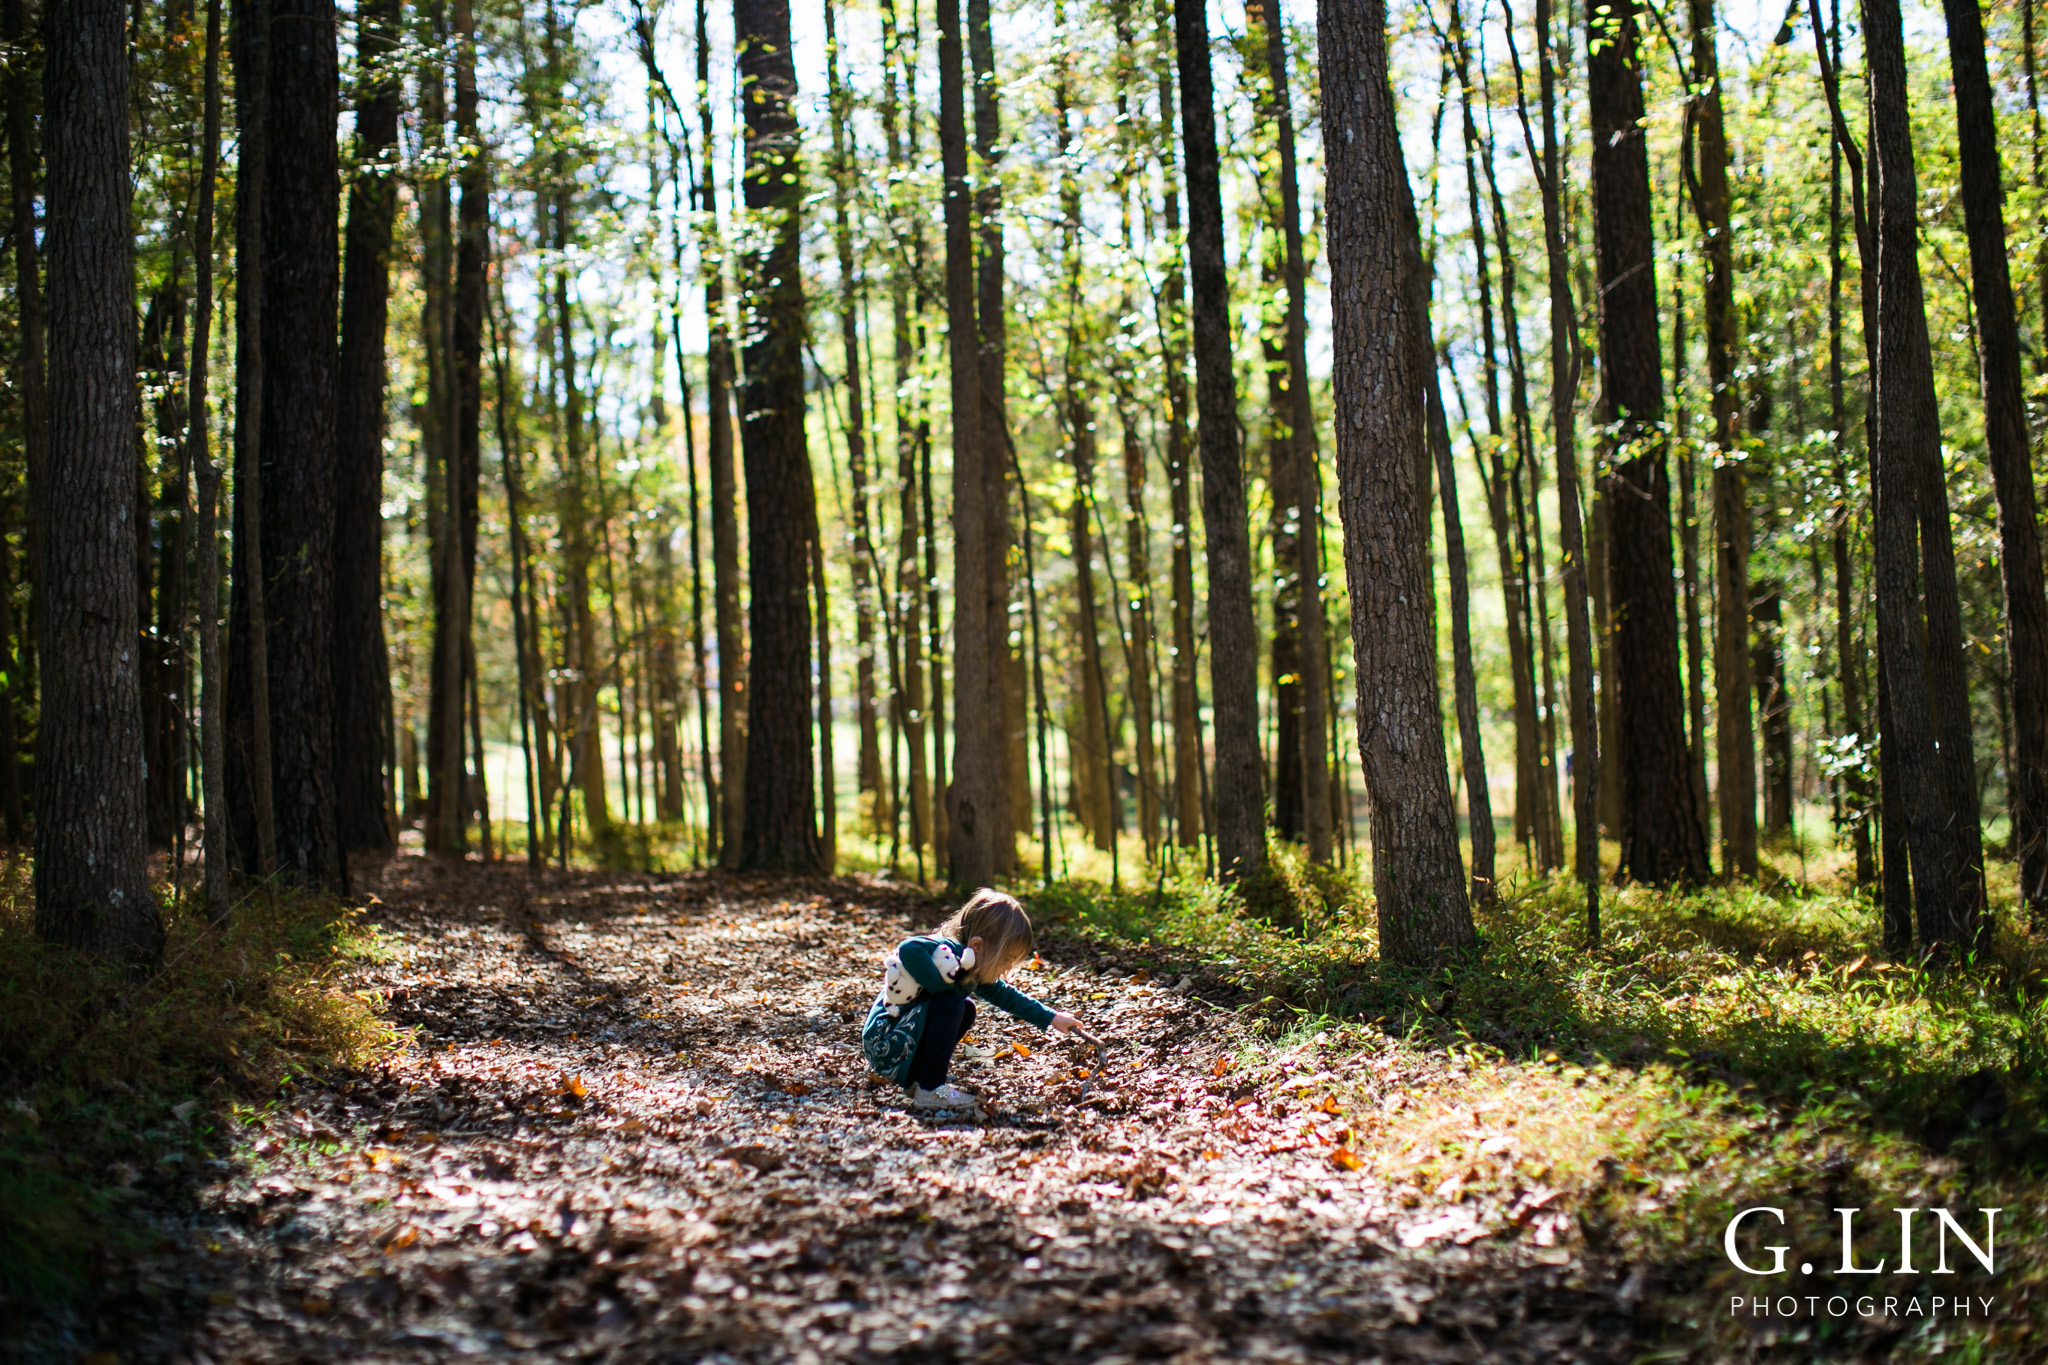 Durham Family Photographer | G. Lin Photography | Little girl exploring in the forest